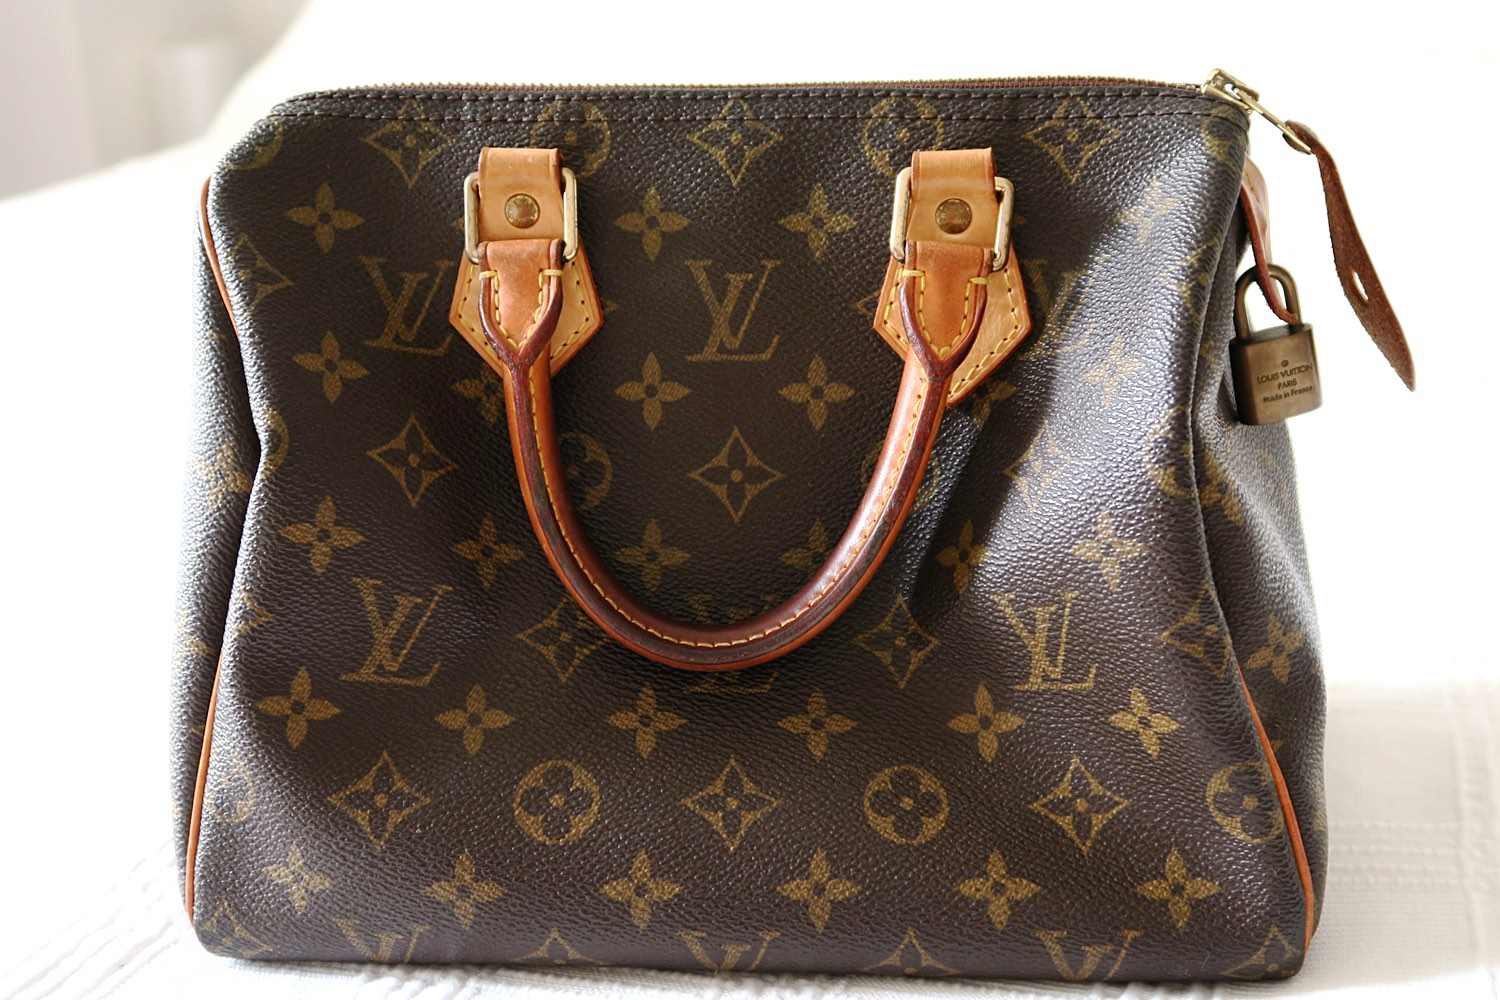 louis-vuitton-speedy-25-monogram-side-on-character-32-lifestyle